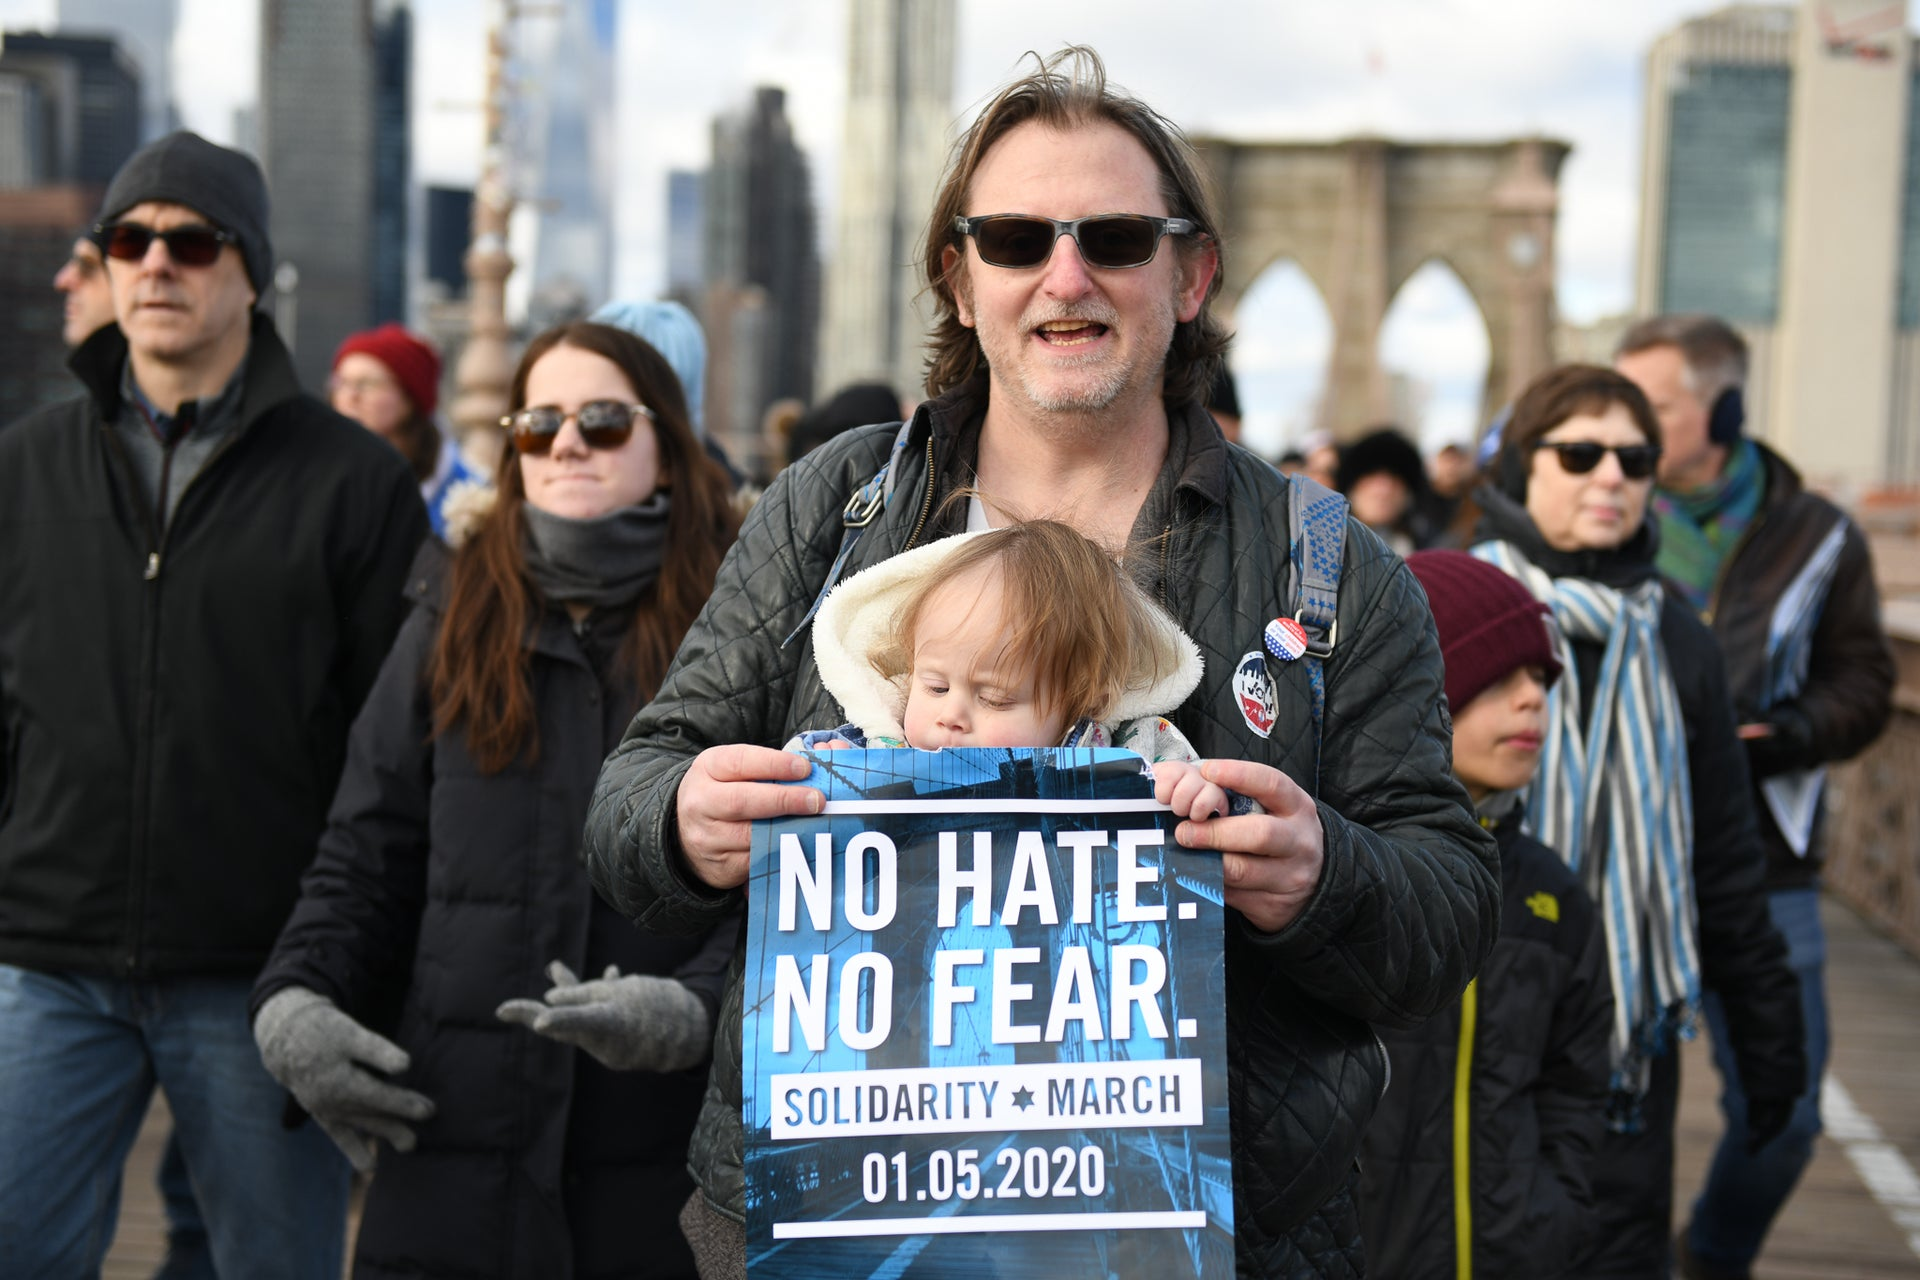 A man carries a small child during a march against anti-Semitism, New York City, January 5, 2019